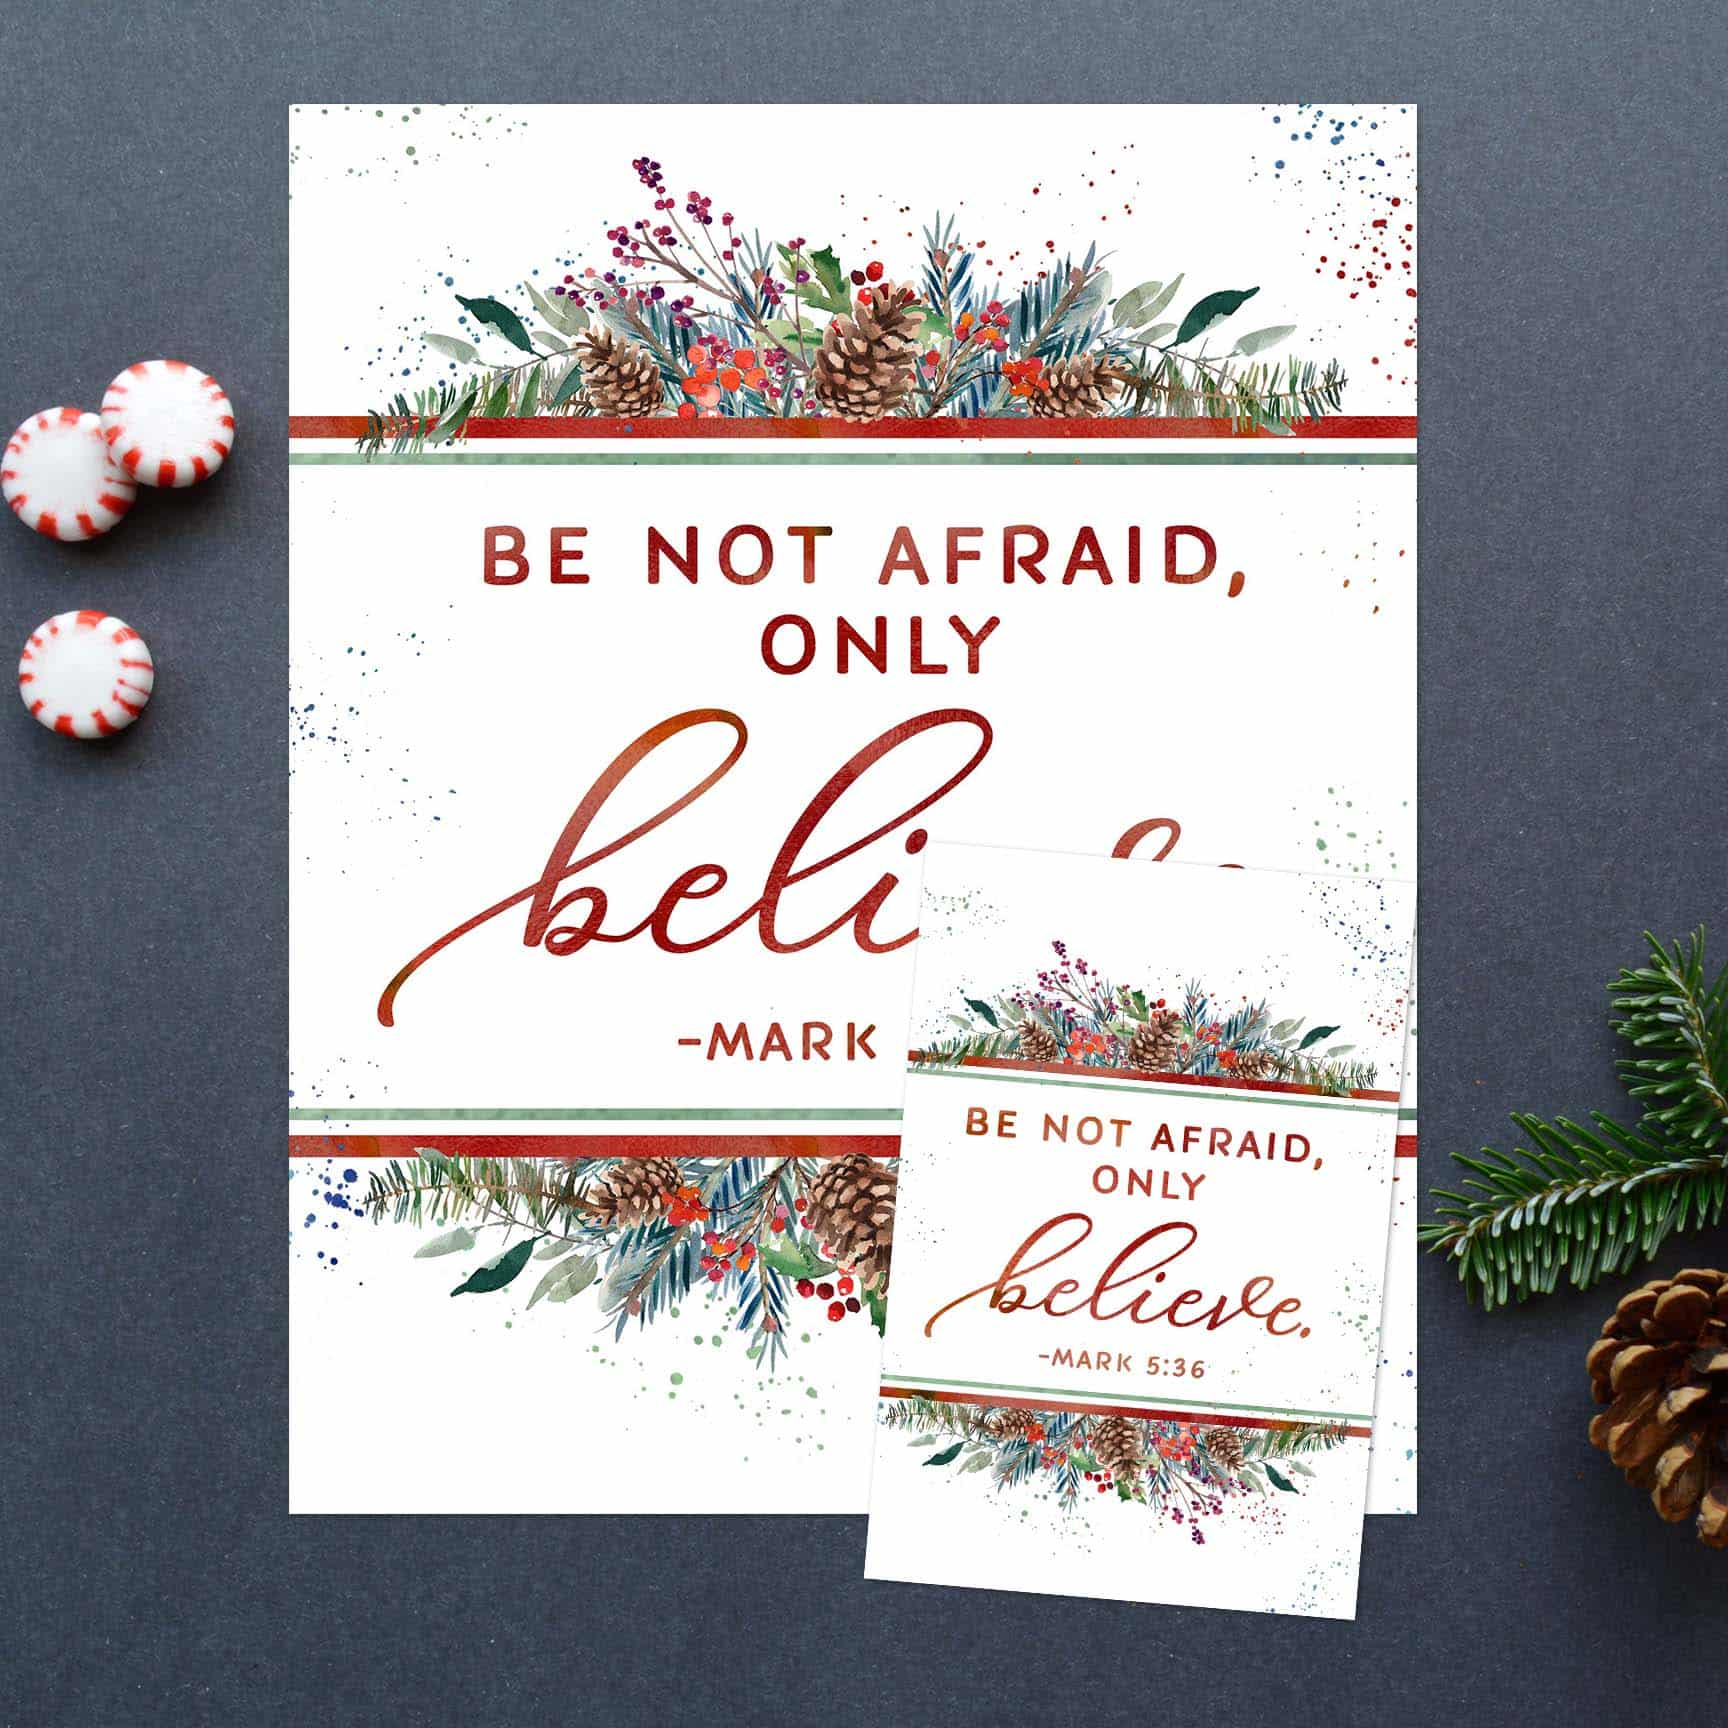 Free Light The Word One by One 2019 Scripture Printable www.TeepeeGirl.com